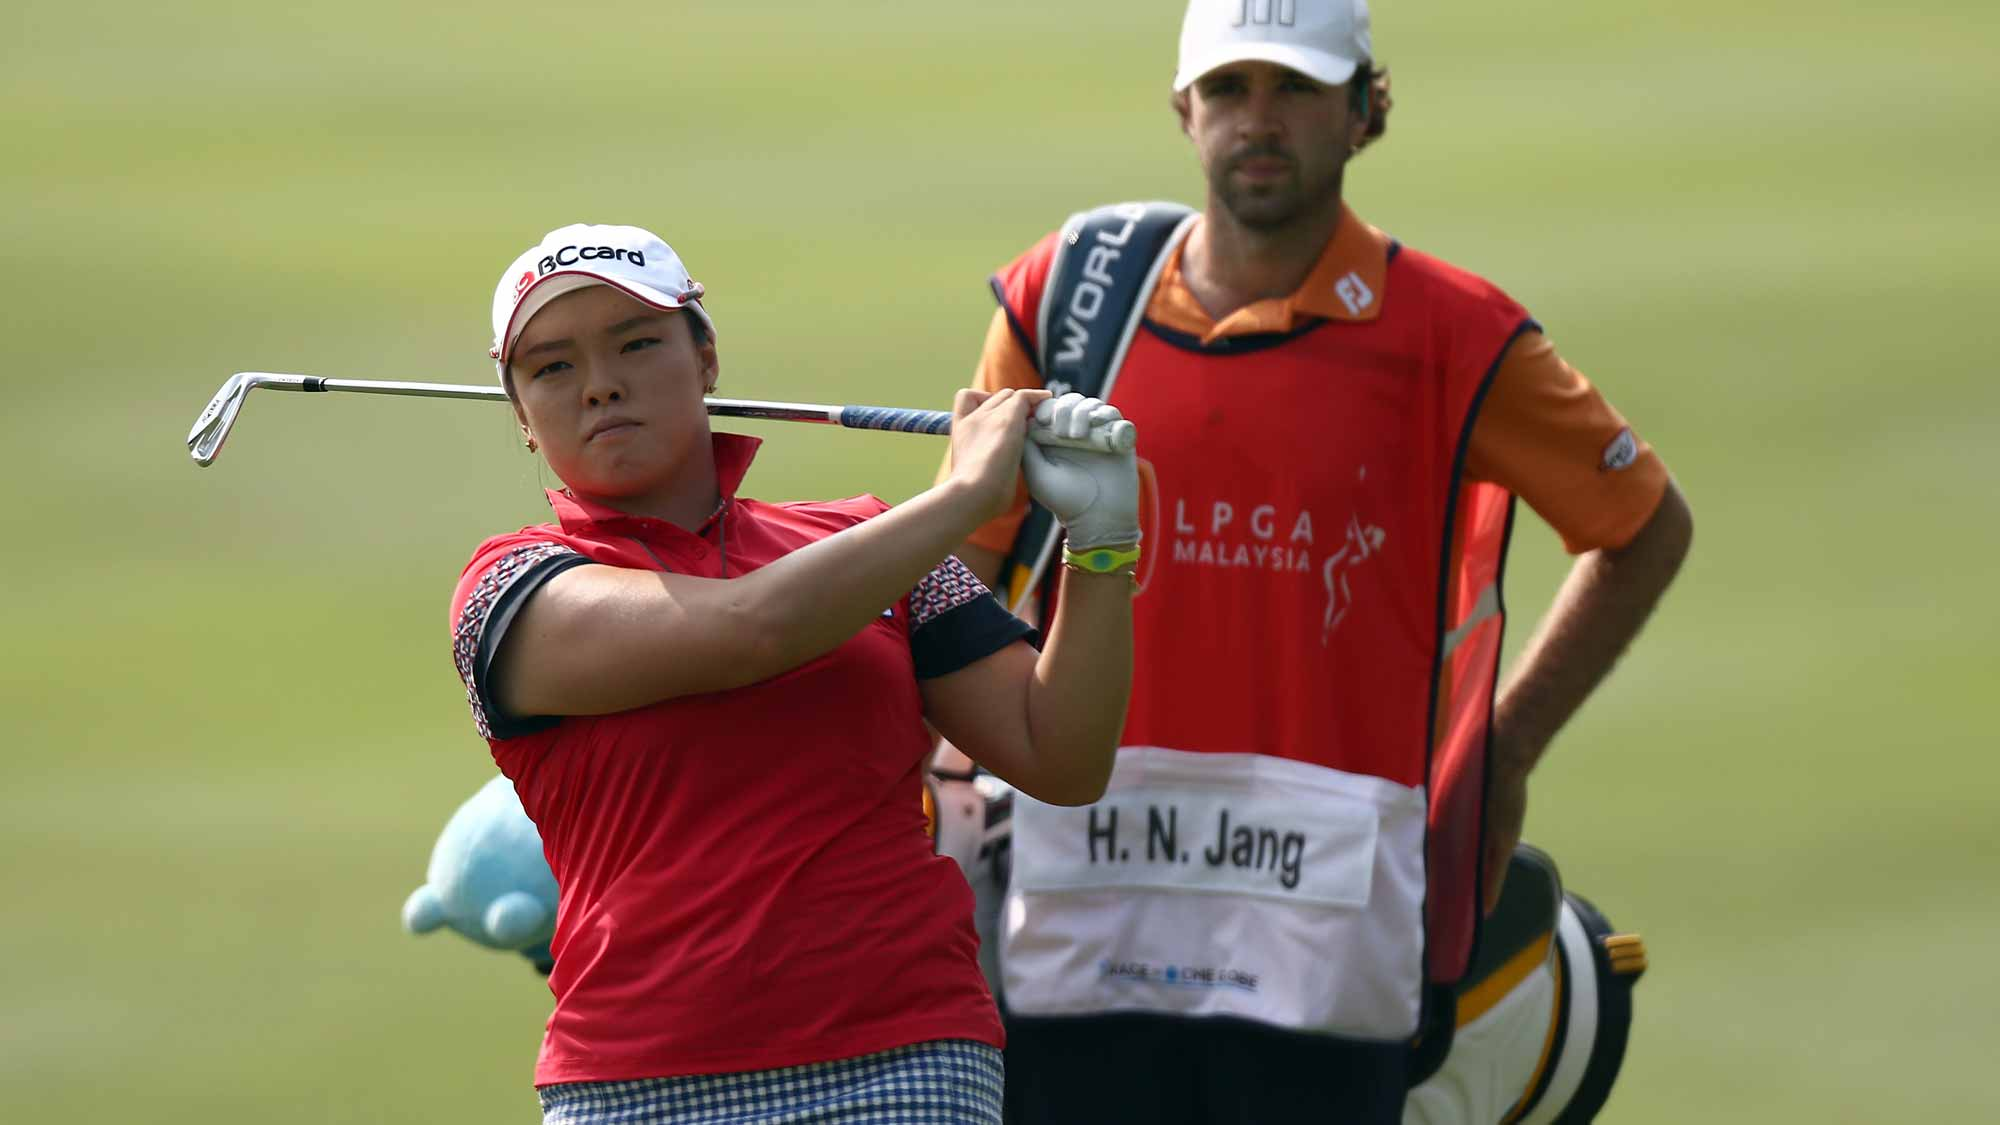 Ha Na Jang of South Korea plays her 2nd shot on the 2nd hole during round two of the Sime Darby LPGA Tour at Kuala Lumpur Golf & Country Club